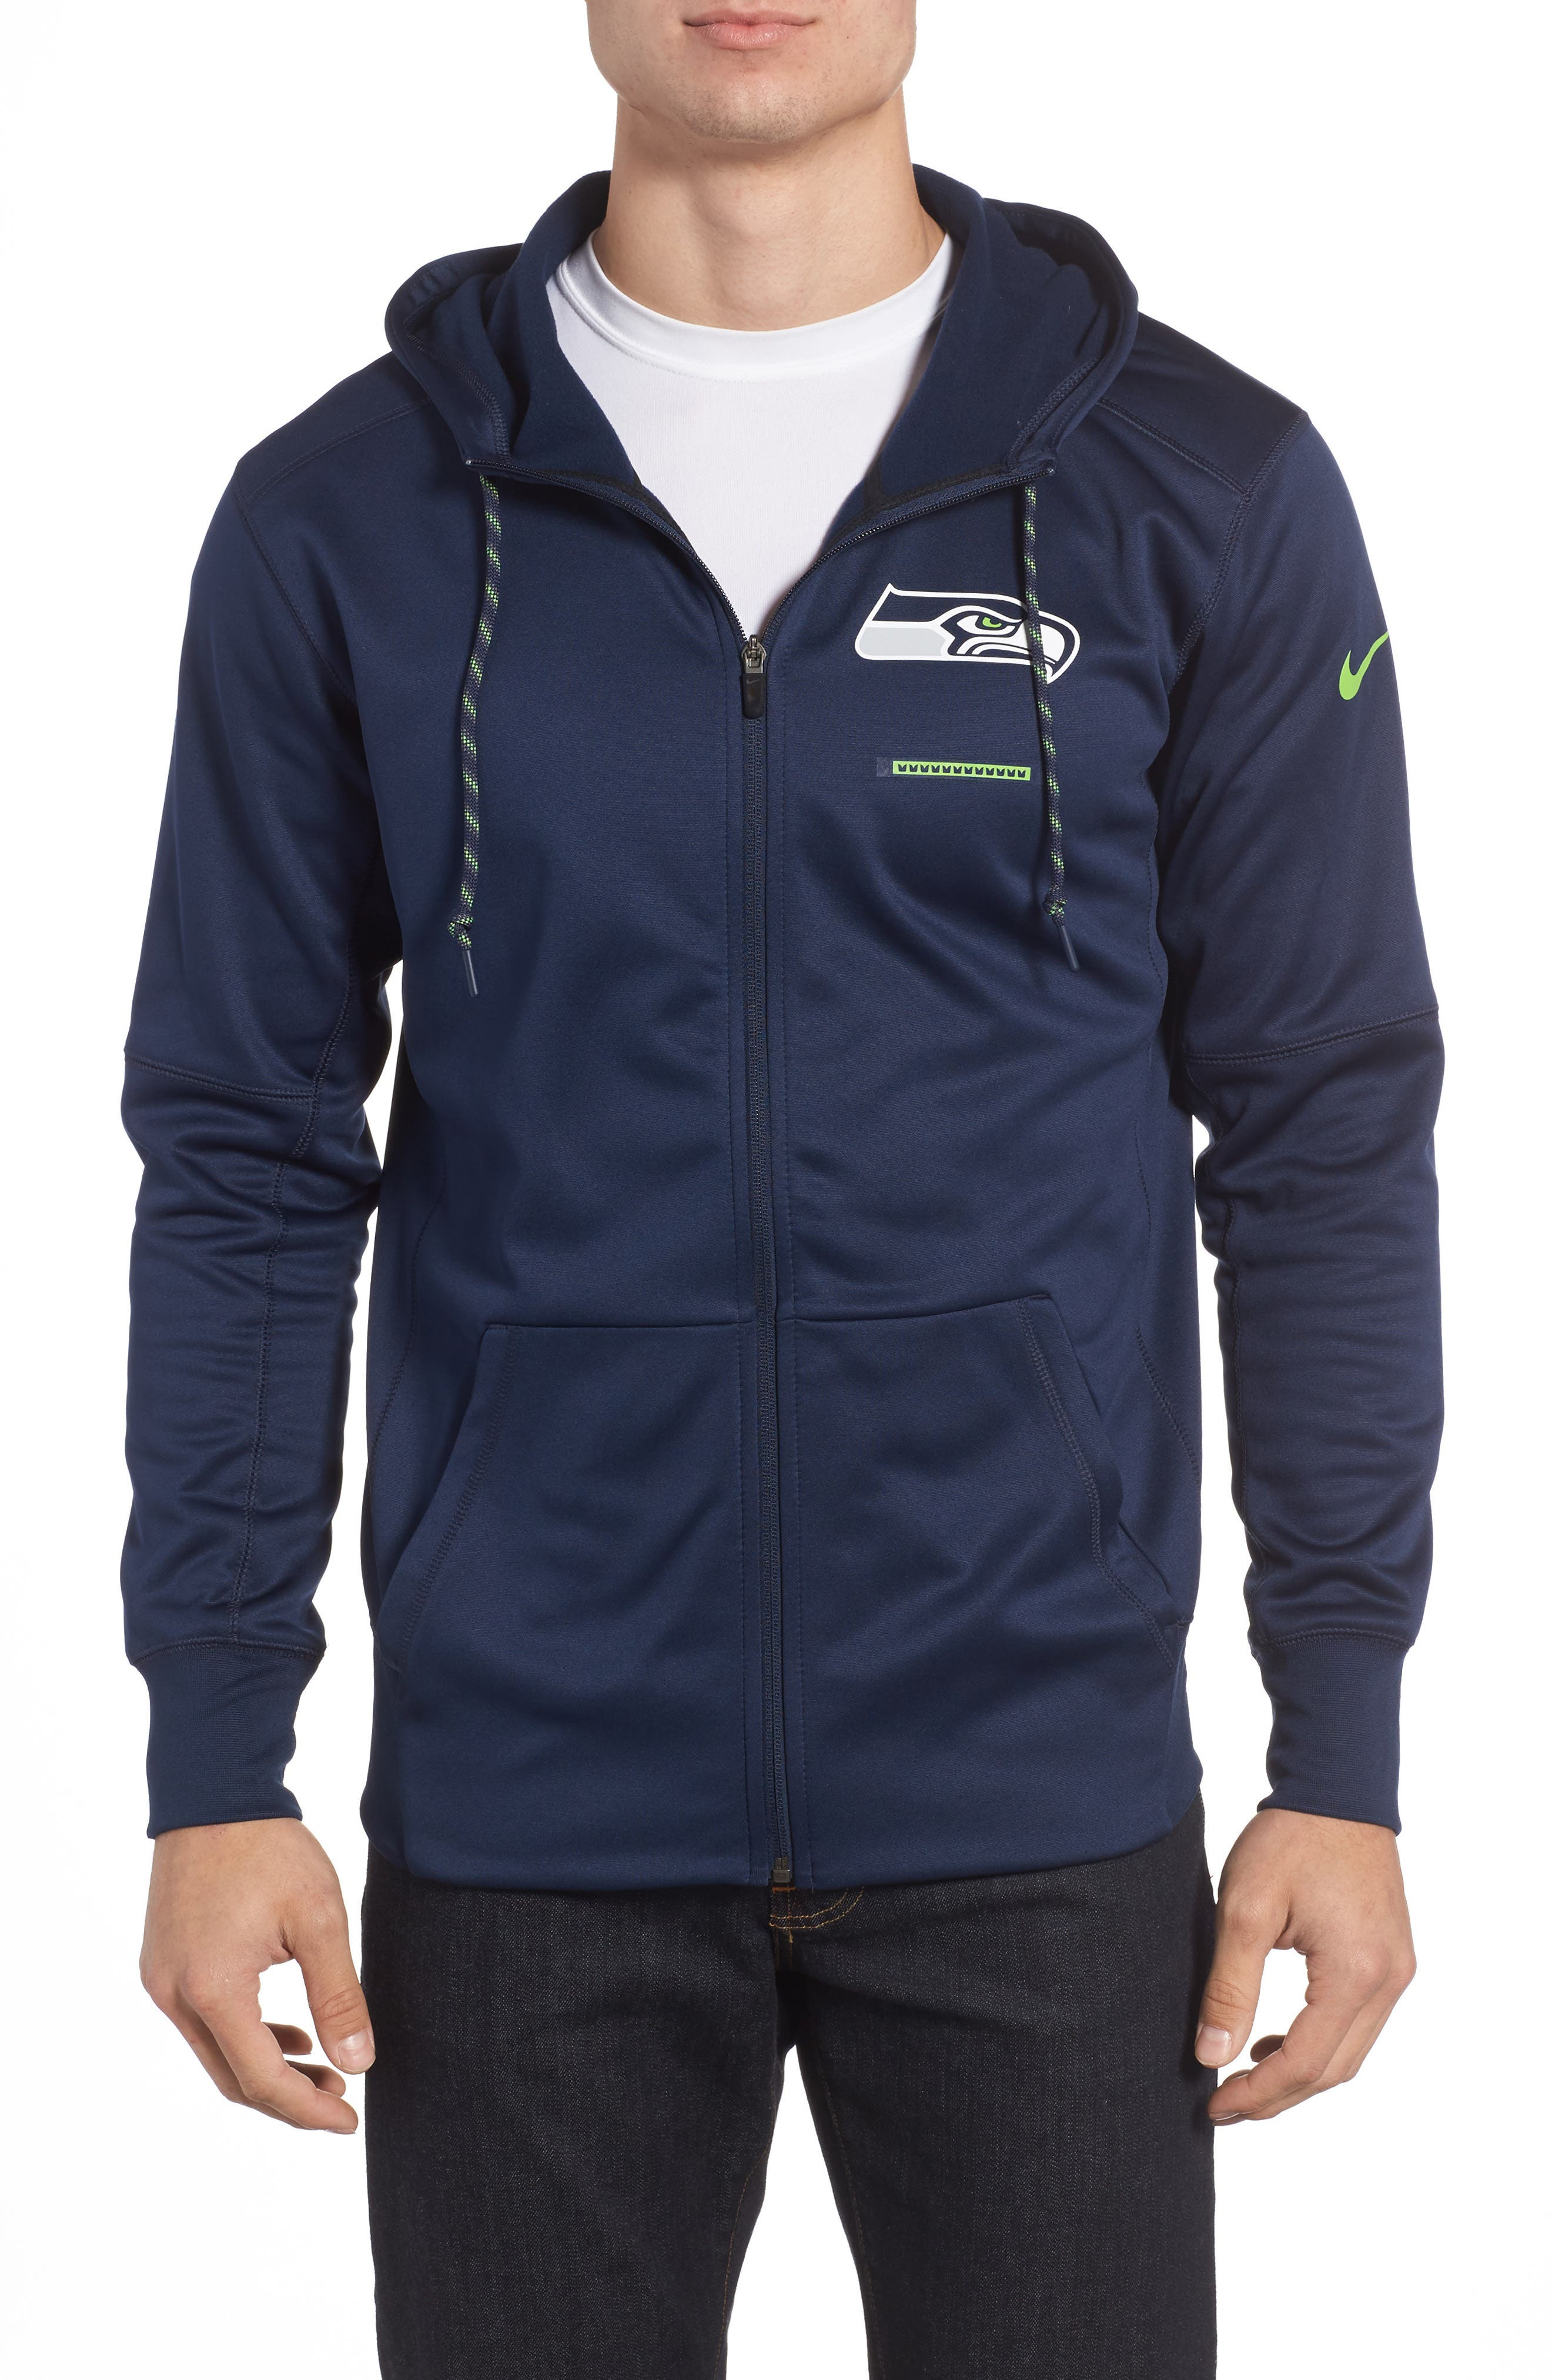 Therma-FIT NFL Graphic Zip Hoodie,                             Main thumbnail 6, color,